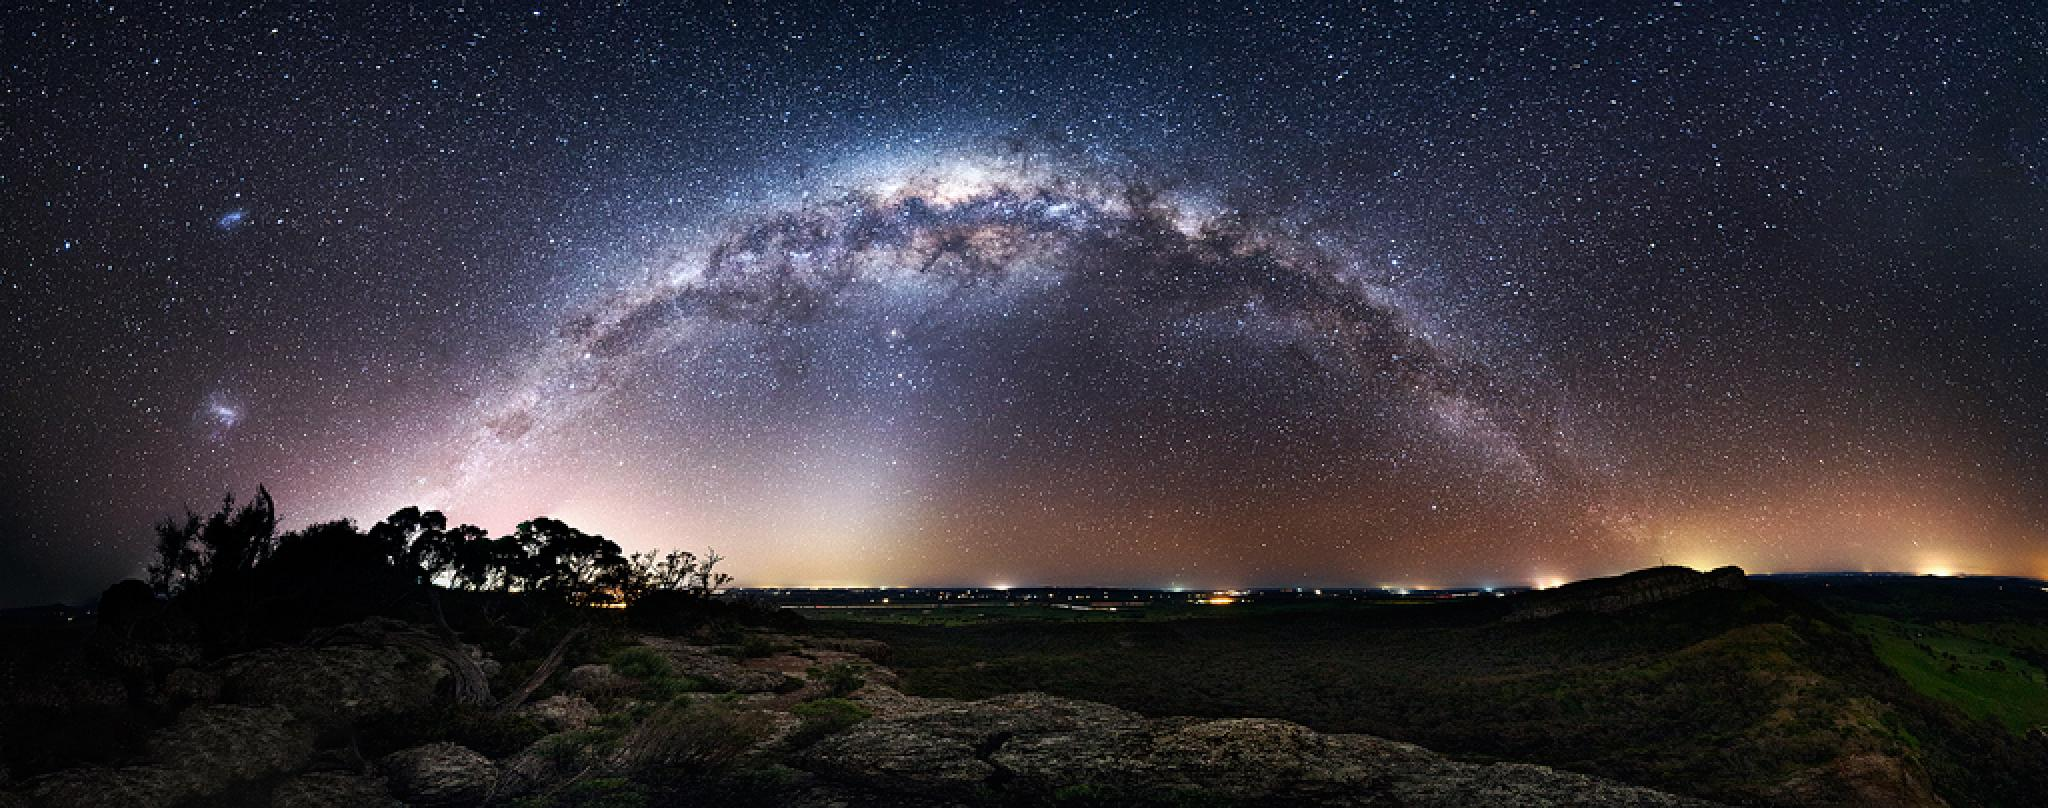 panoramic starry sky at night by Visuelle Forensik